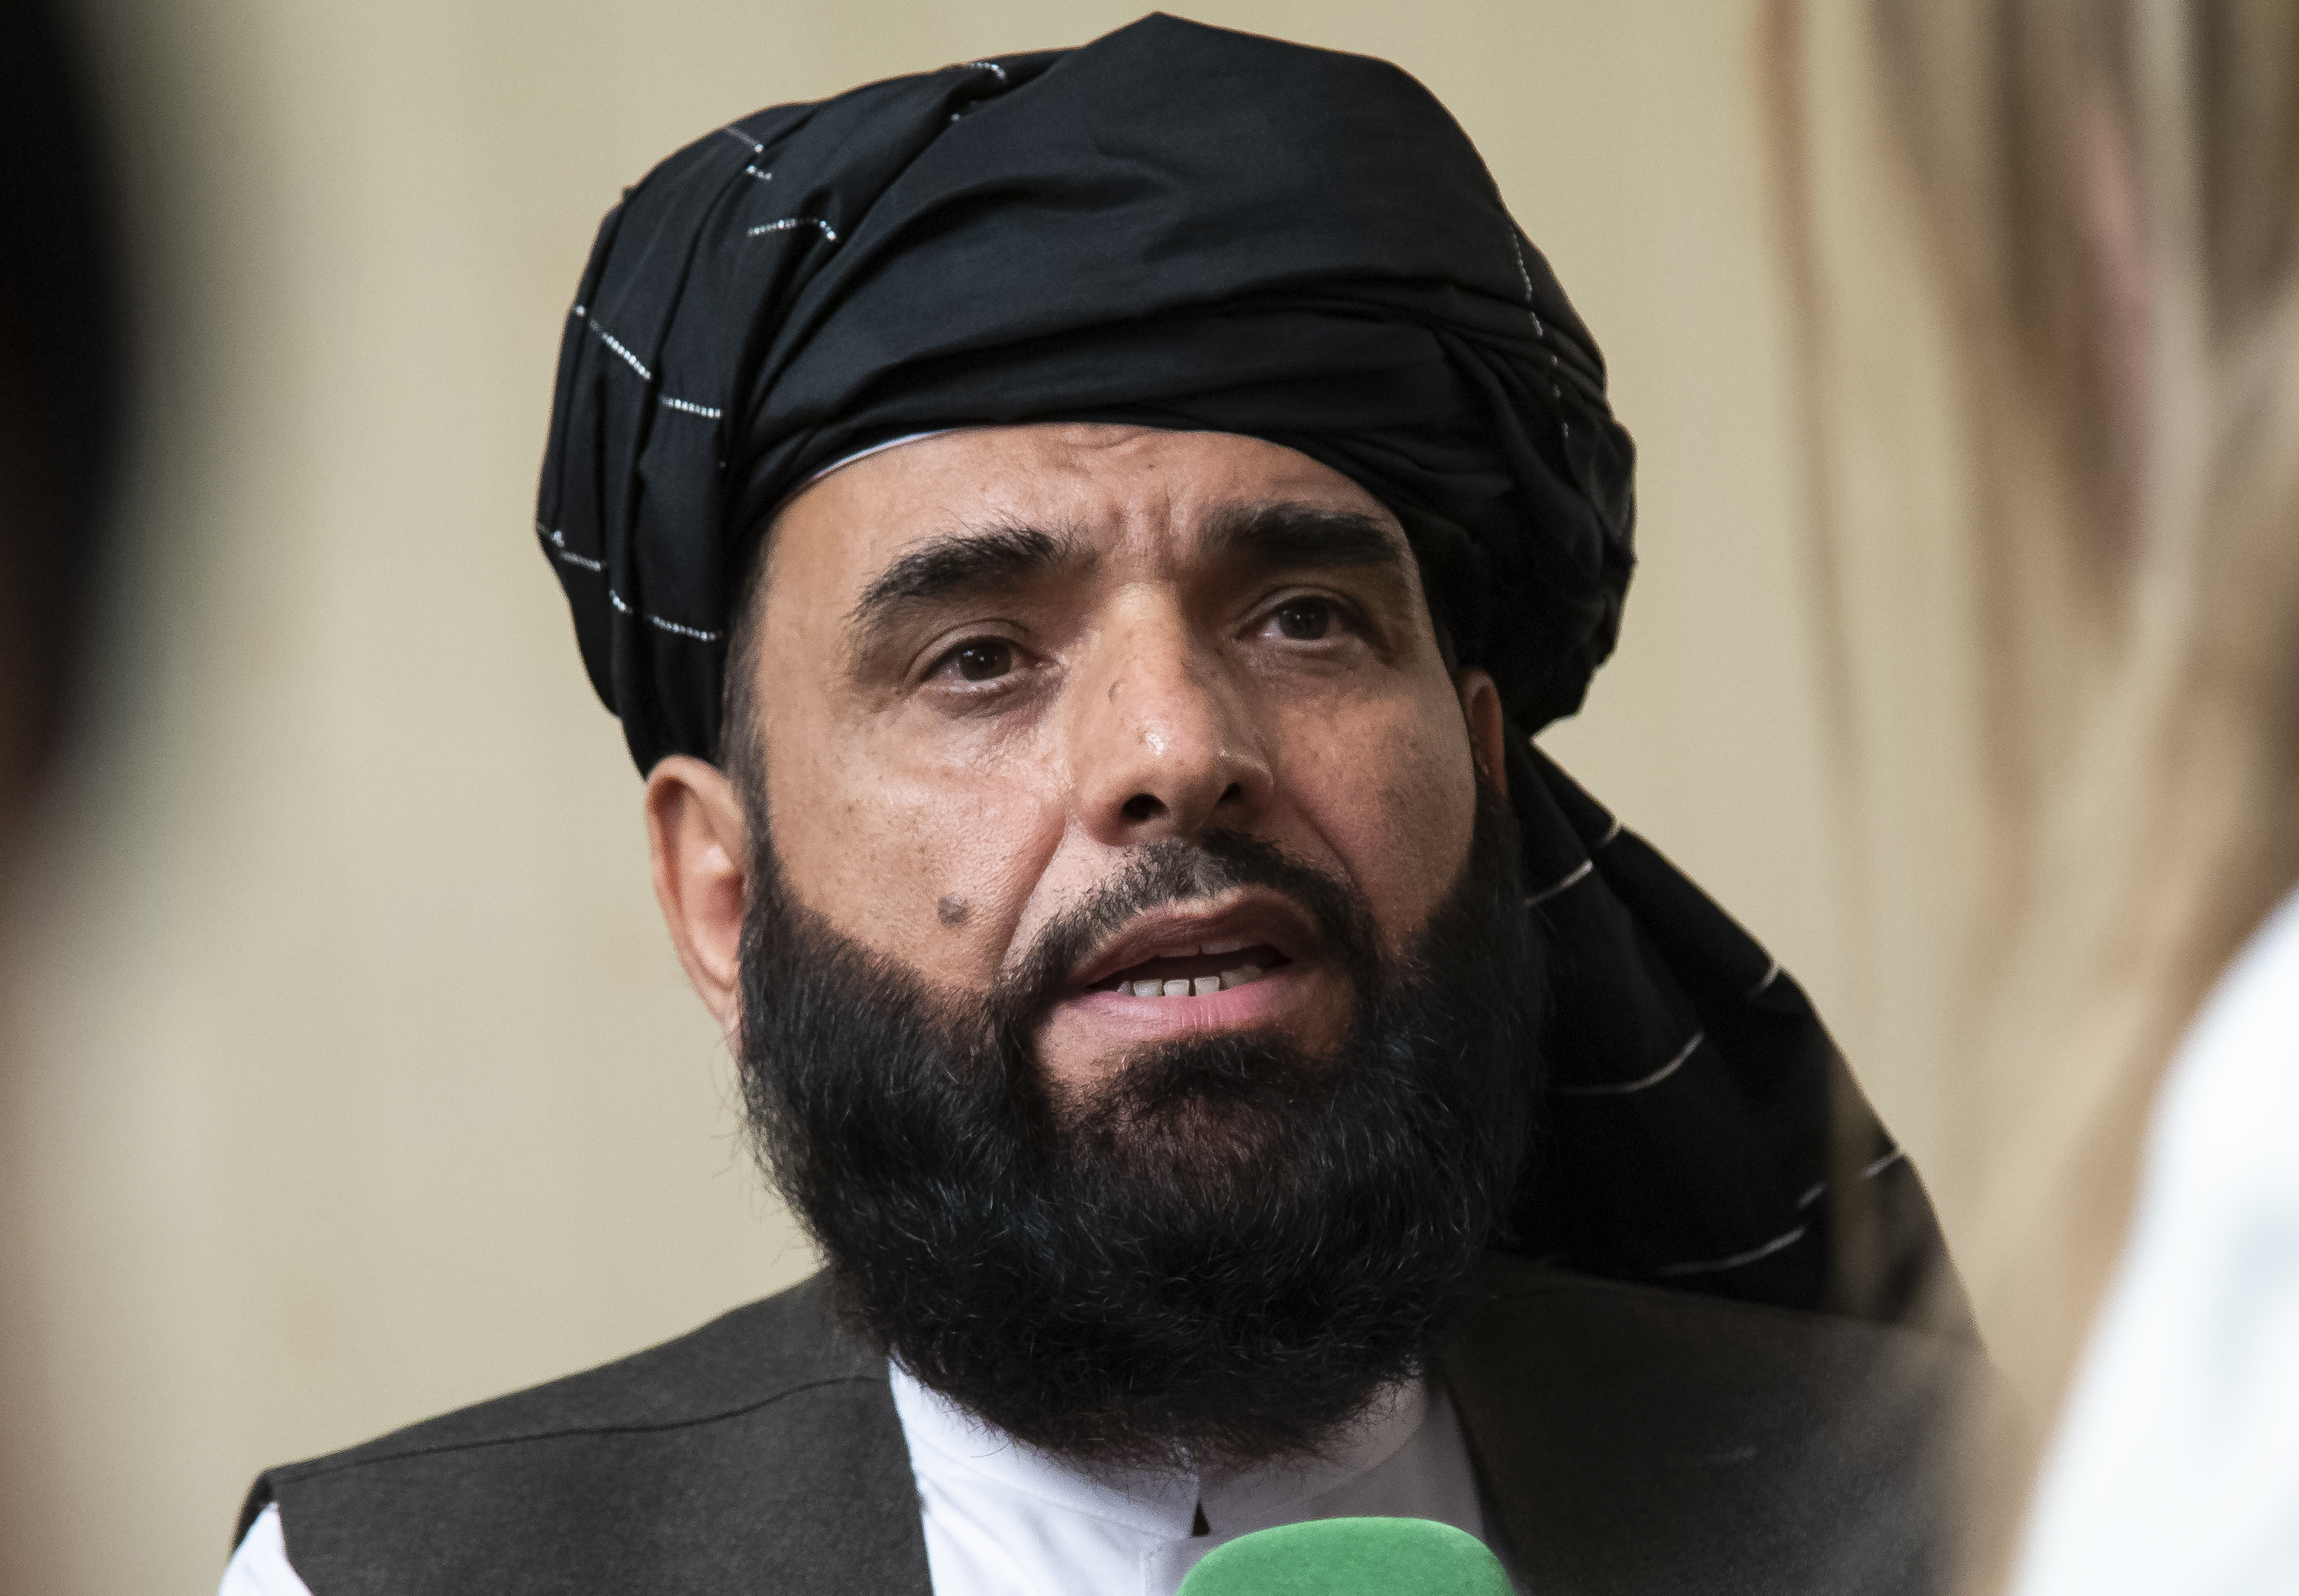 In this May 28, 2019, file photo, Suhail Shaheen, spokesman for the Taliban's political office in Doha, speaks to the media in Moscow. (Alexander Zemlianichenko/AP)